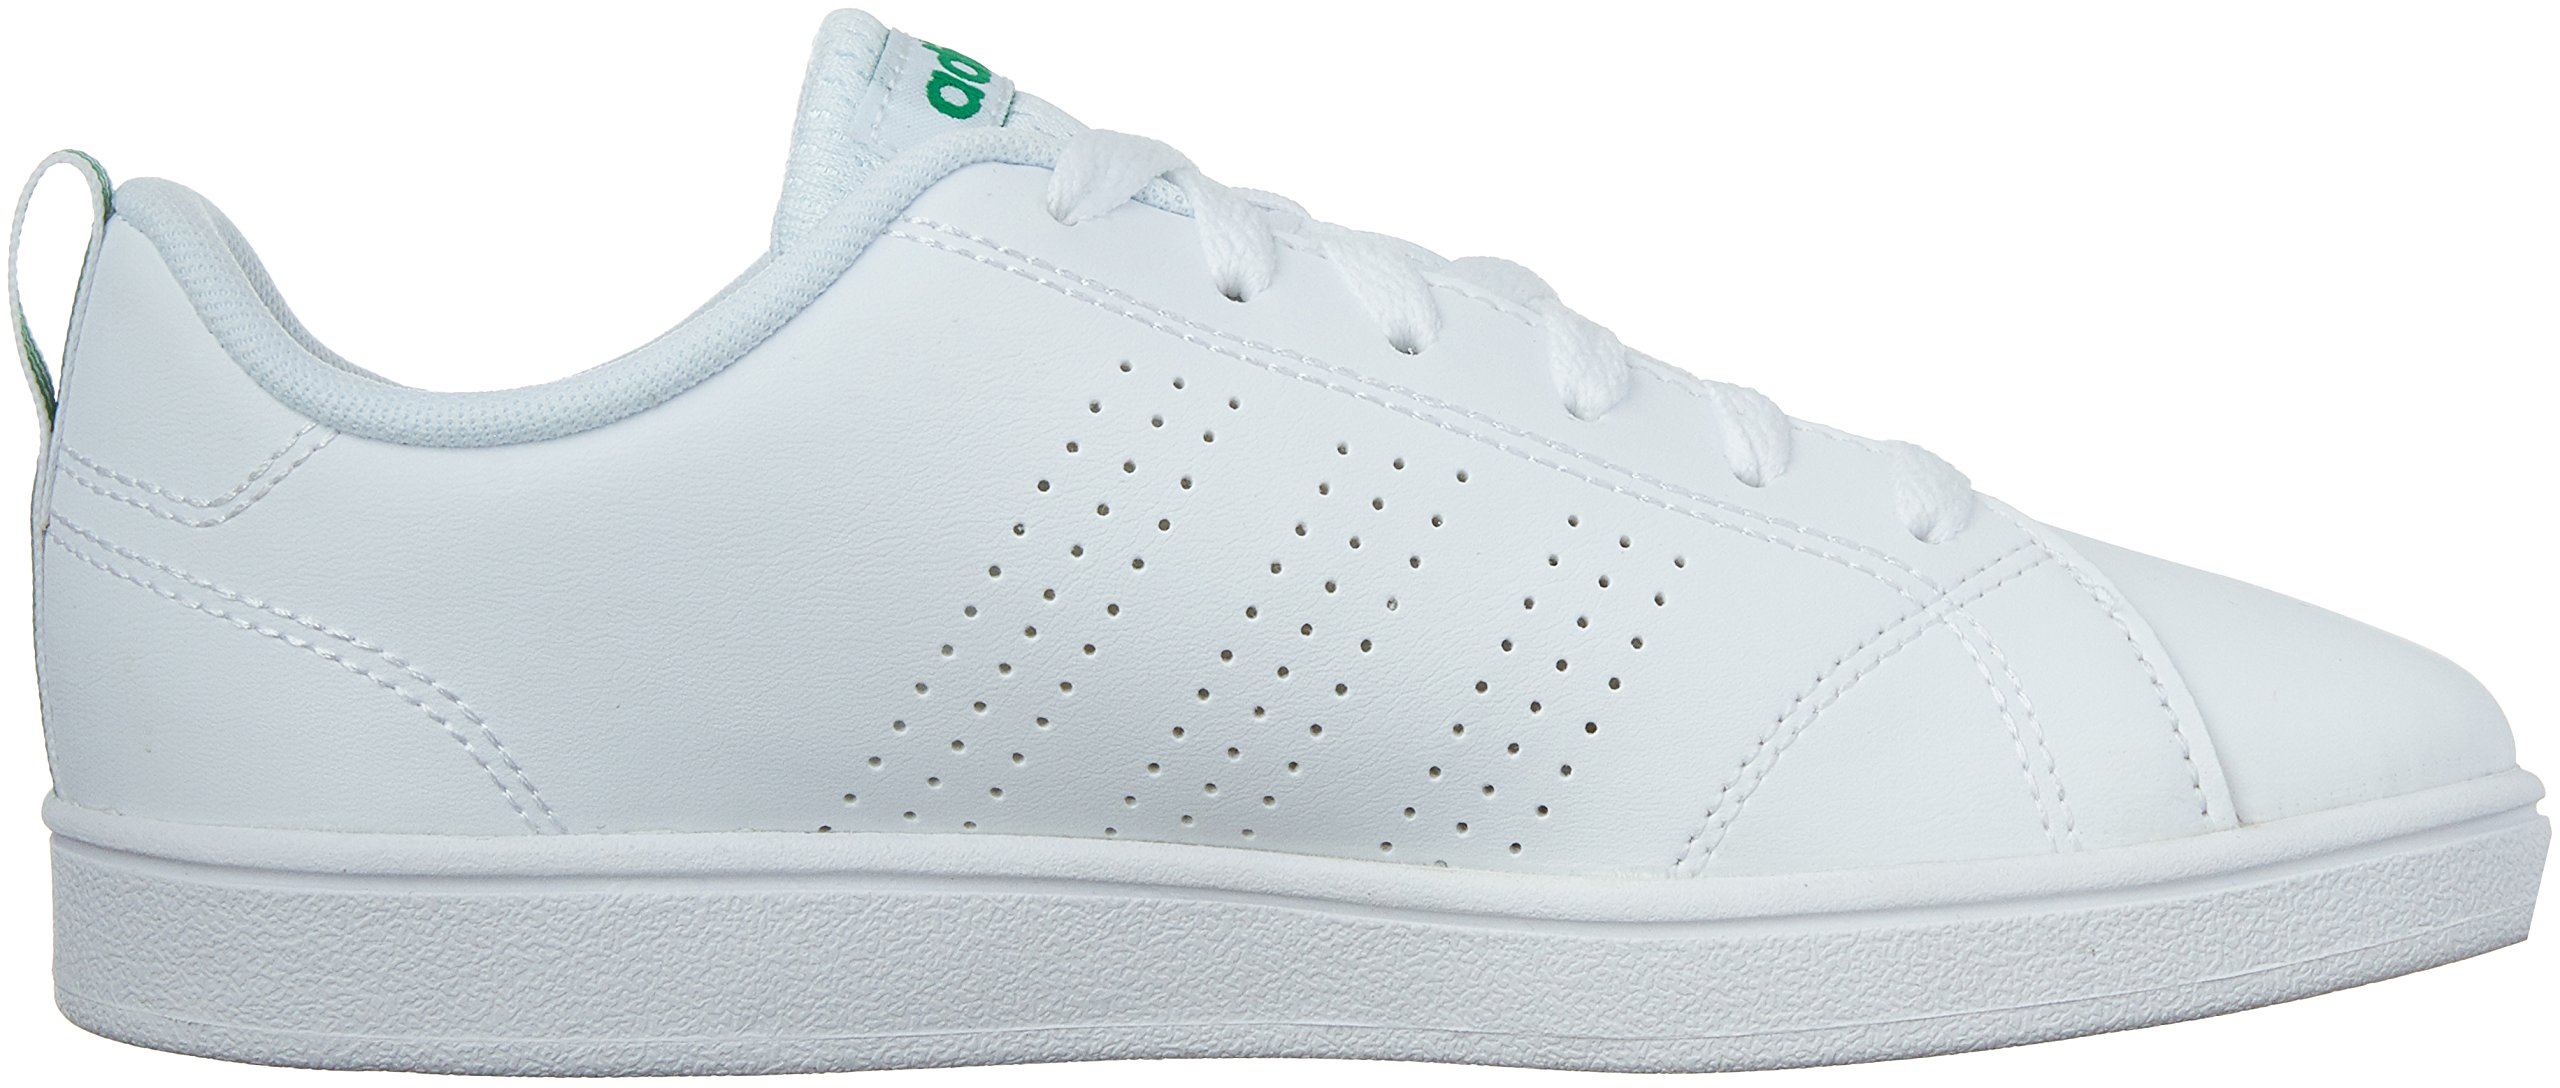 adidas Kids' VS Advantage Clean Sneaker, White/White/Green, 1.5 M US Little Kid by adidas (Image #6)